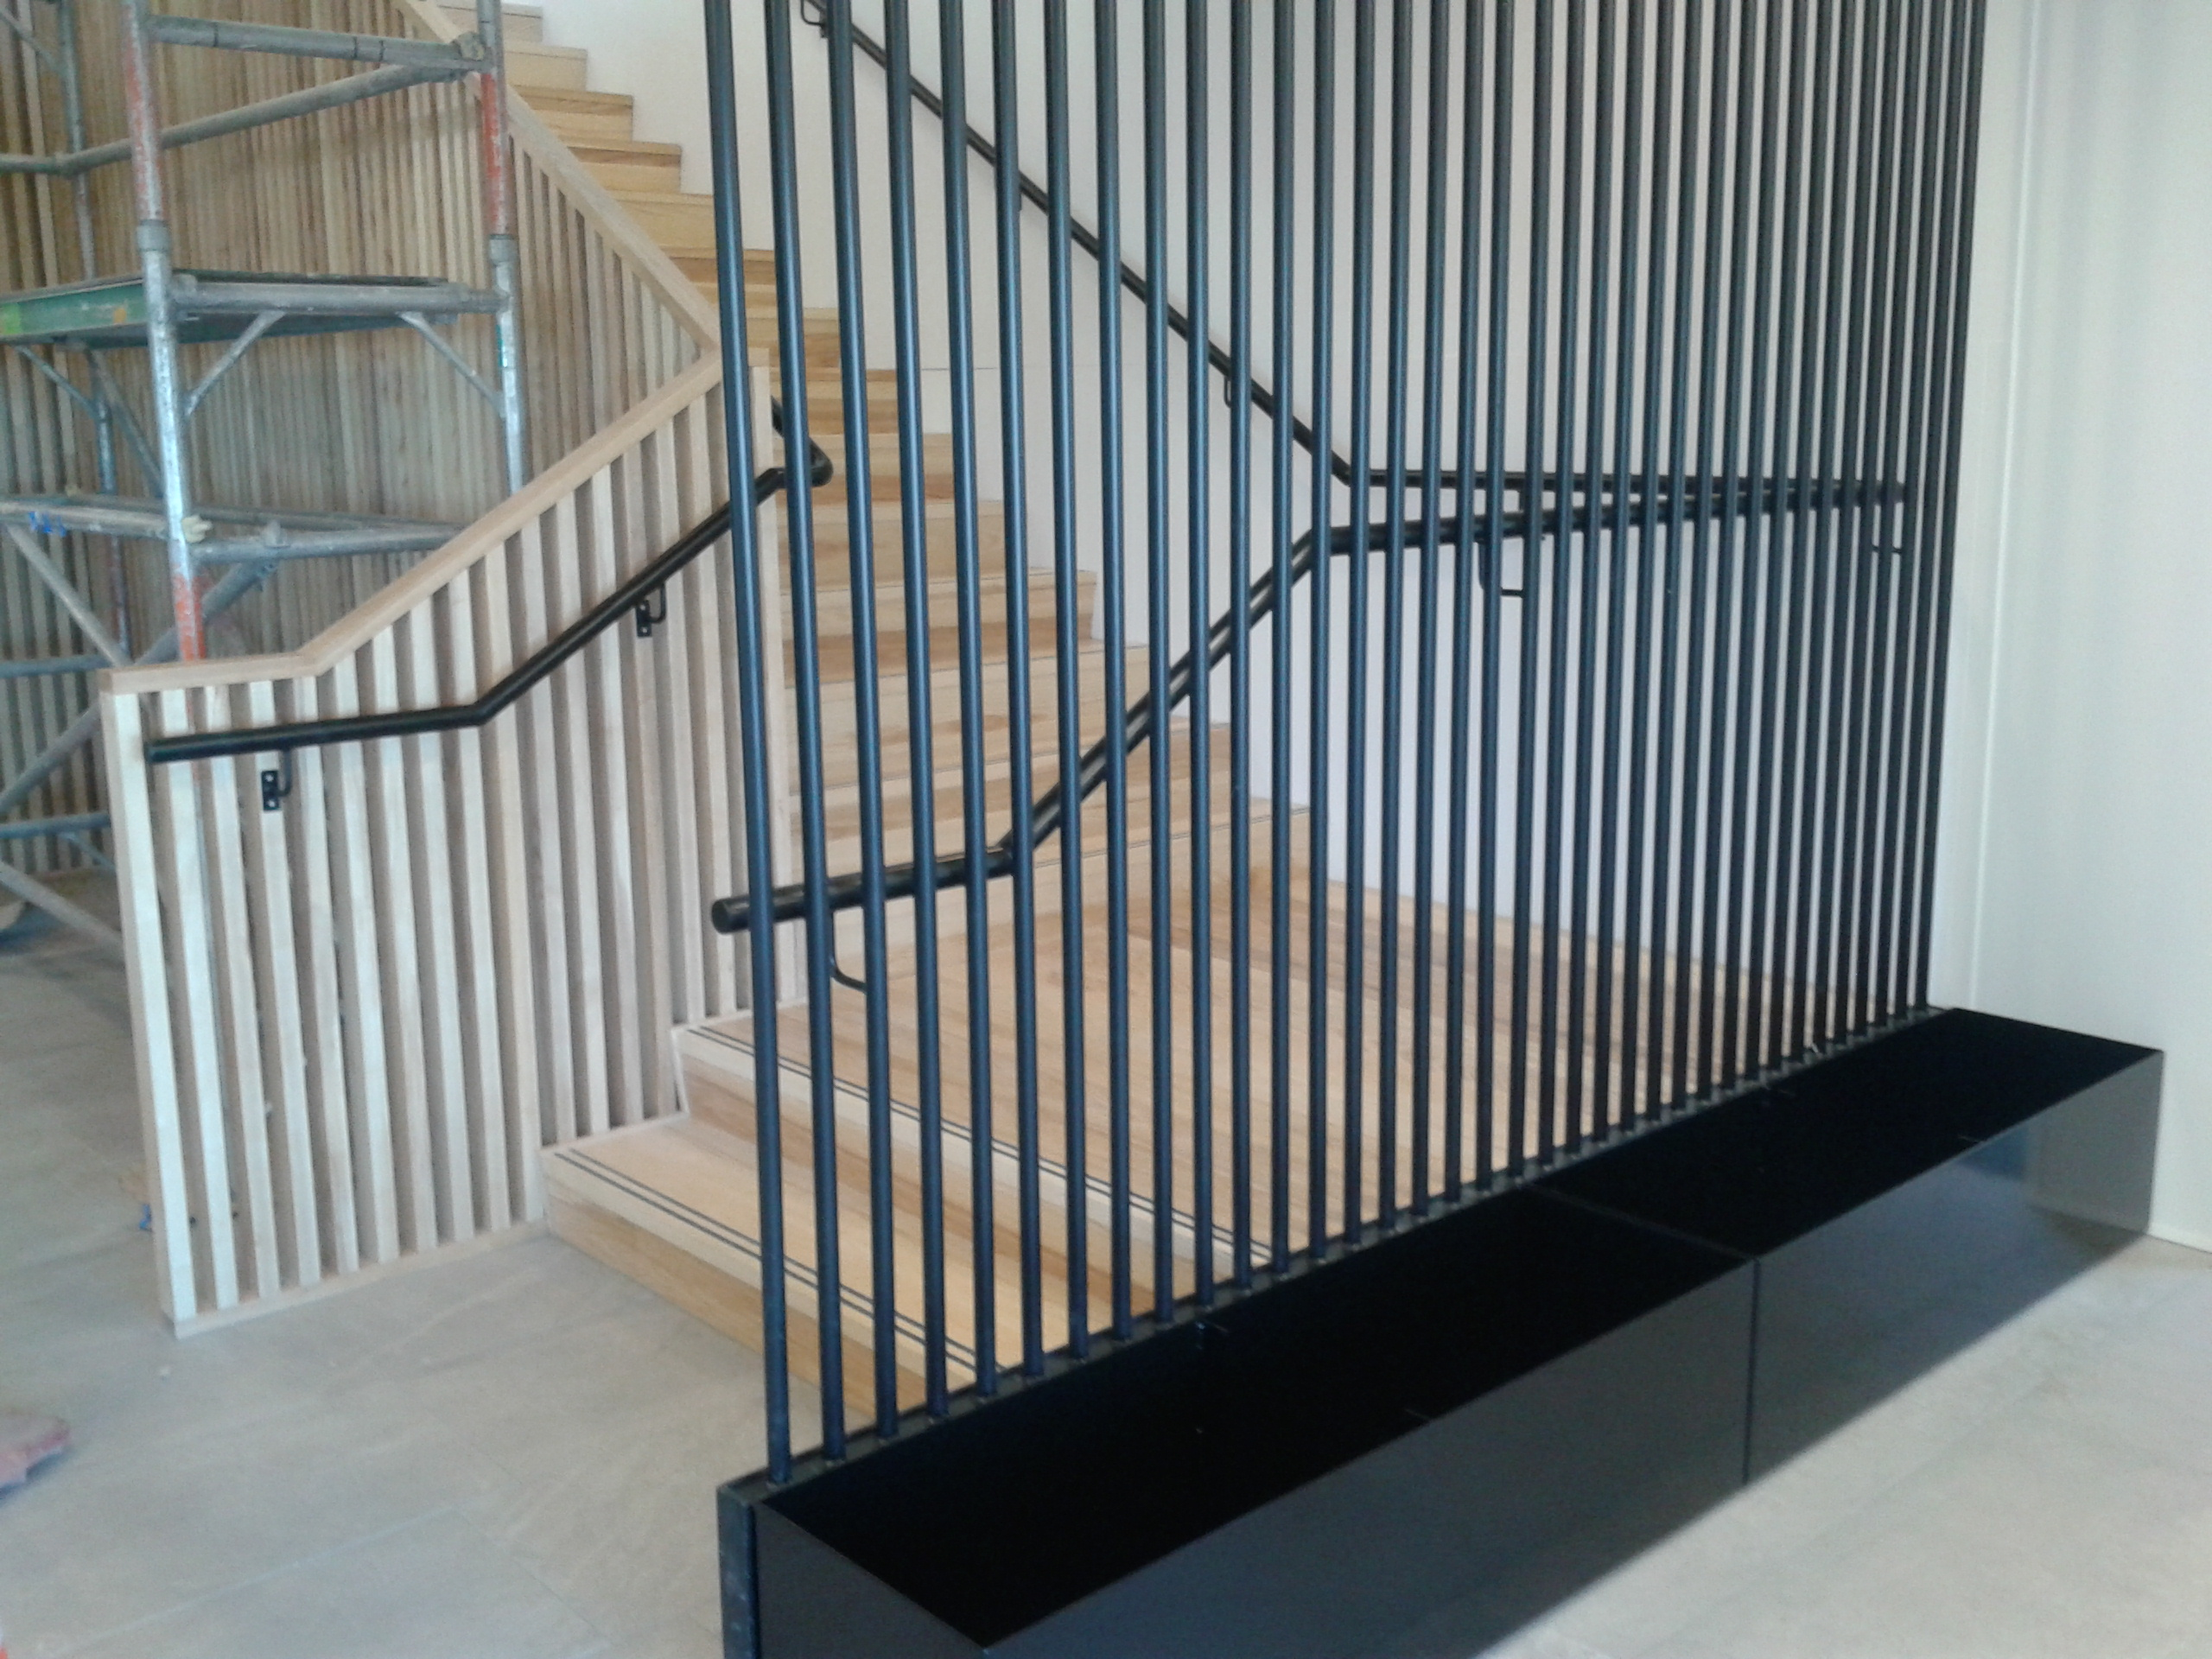 Architectural Powder Coated Steel Pipe Feature Wall & Stair Handrail